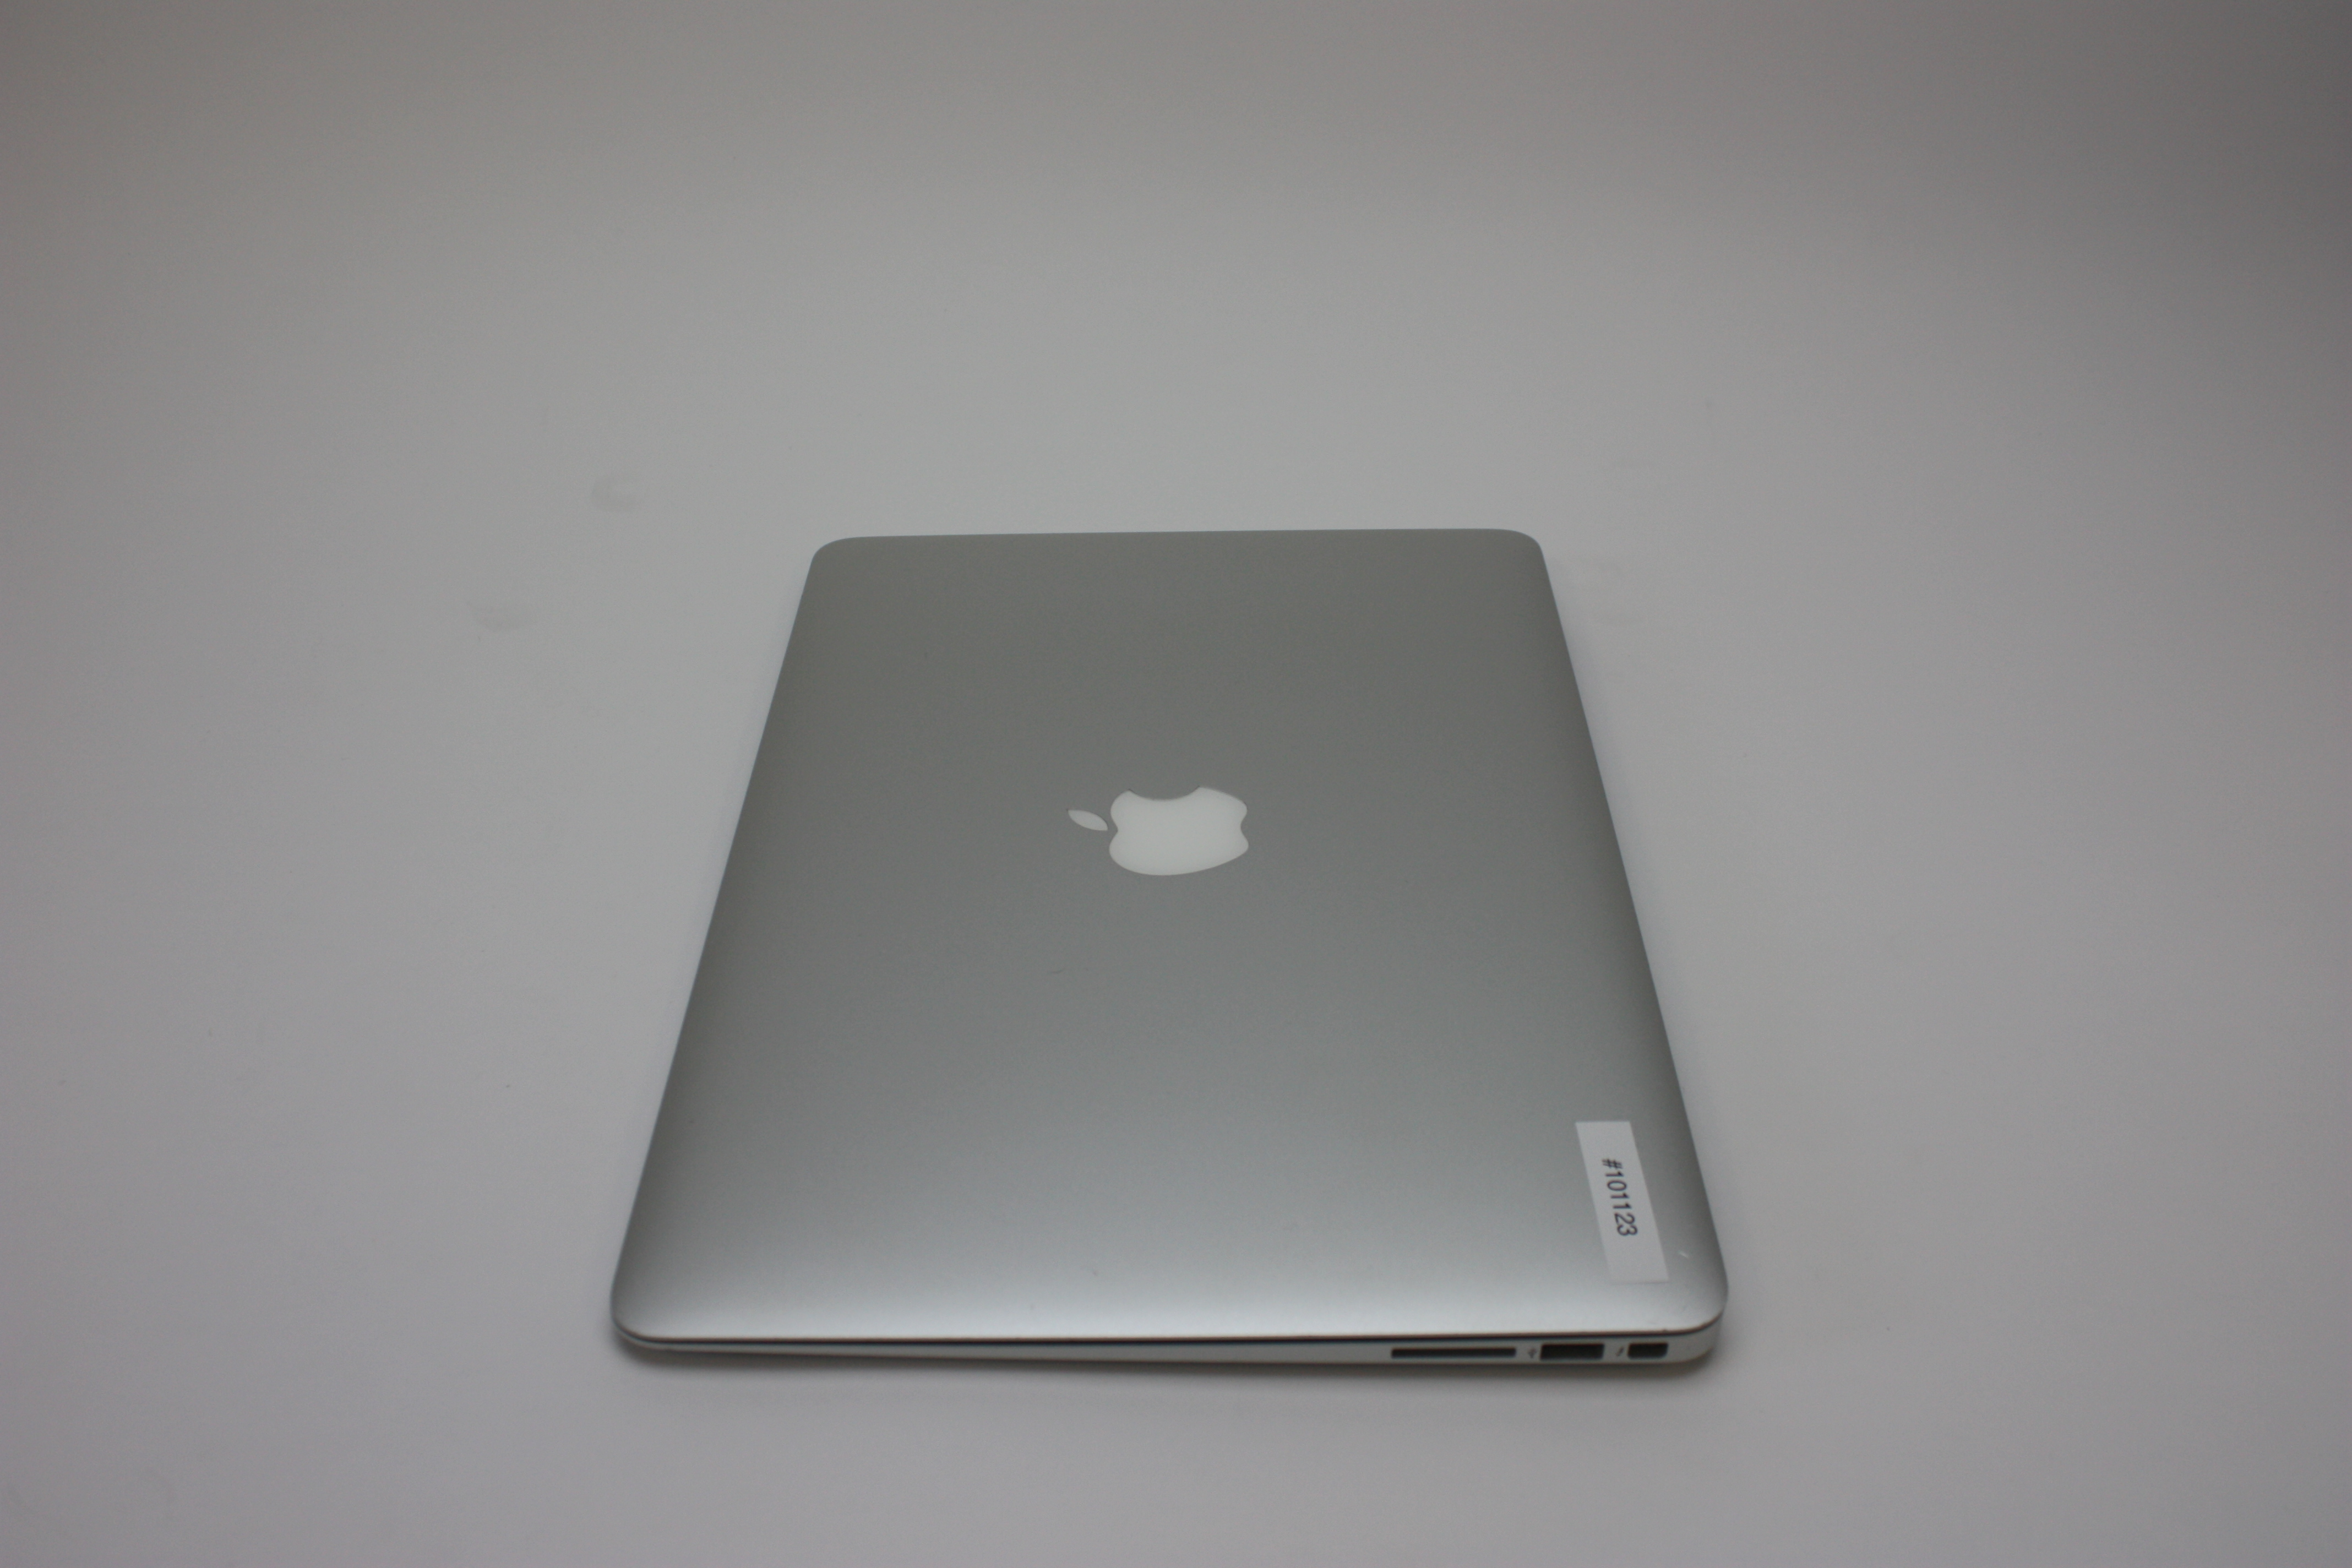 MacBook Air 13-inch, 1.4 GHz Intel Core i5, 4 GB 1600 MHz DDR3, 128 GB Flash Storage, Product age: 43 months, image 7